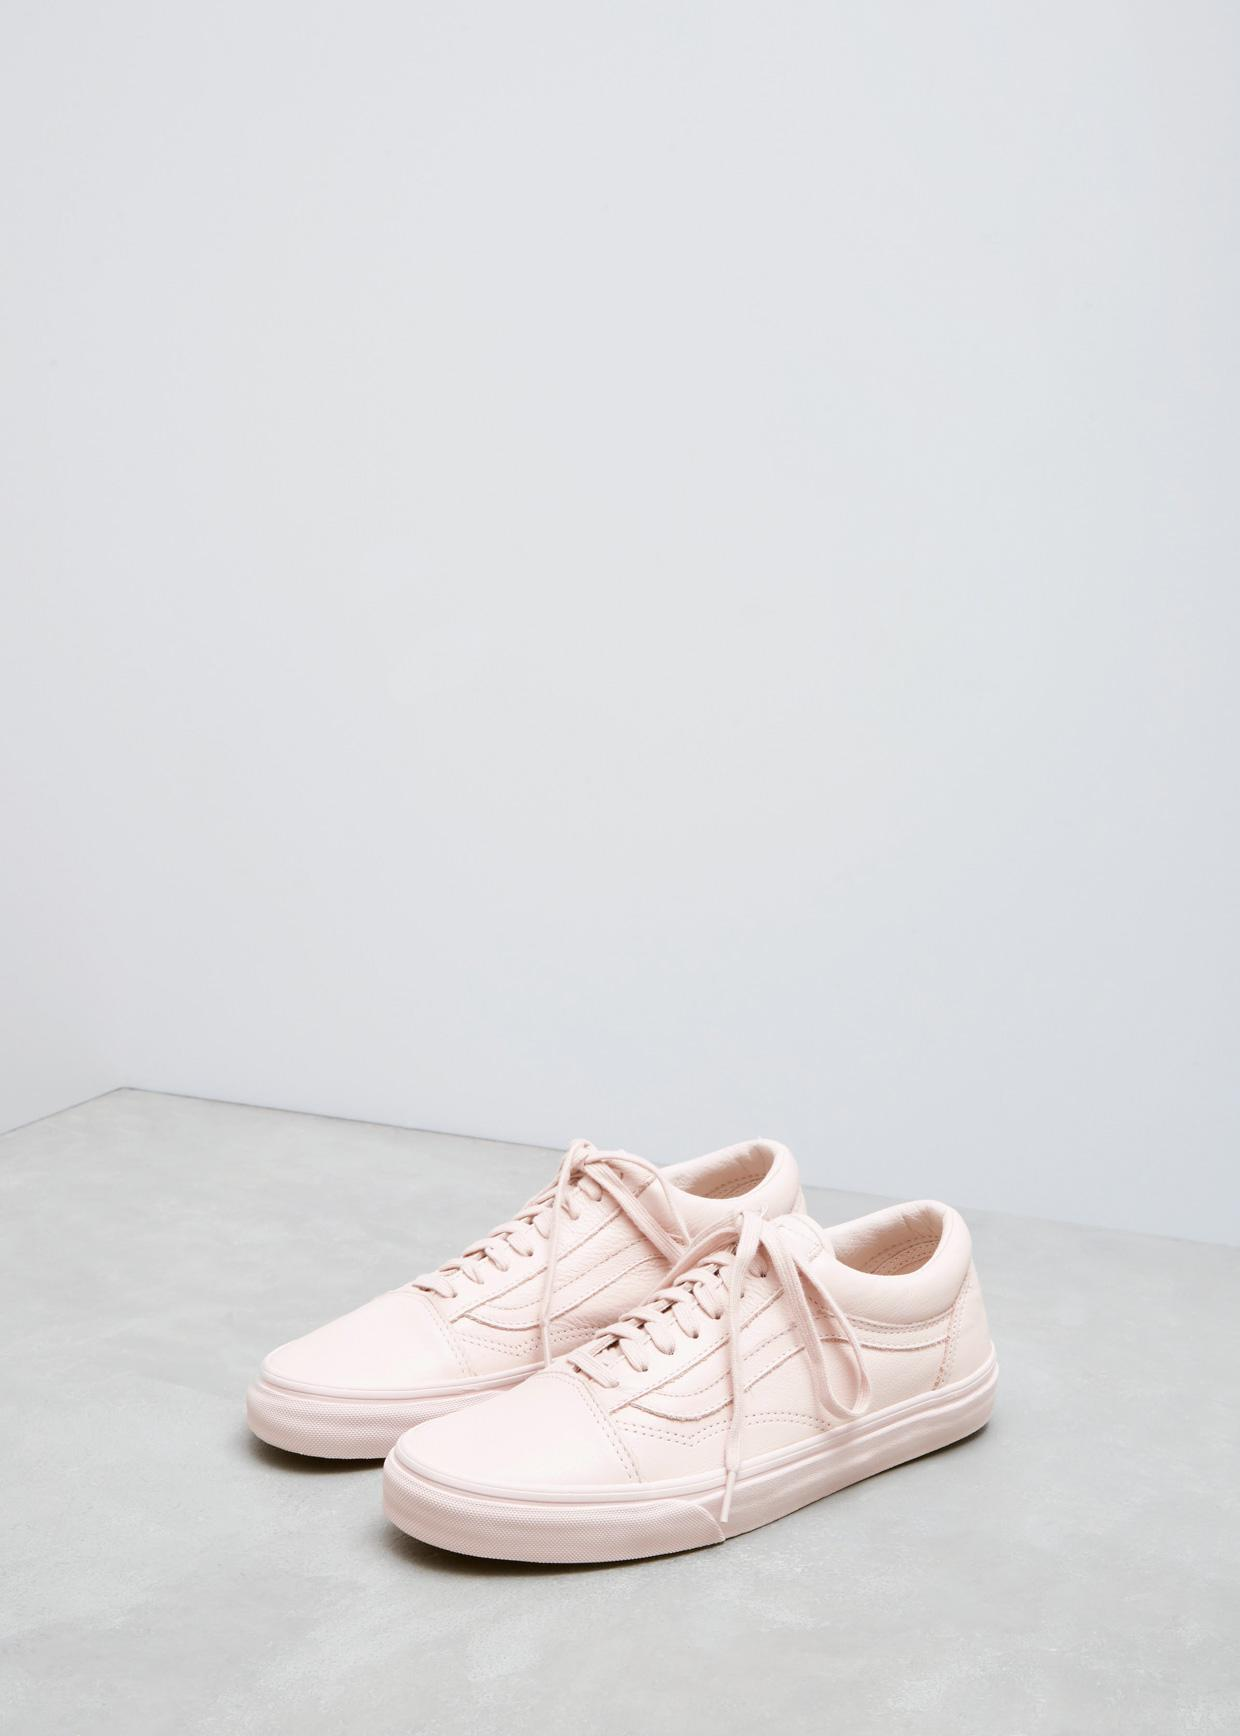 Lyst - Vans Sepia Rose Mono Leather Ua Old Skool in Pink 3e4ce5d95